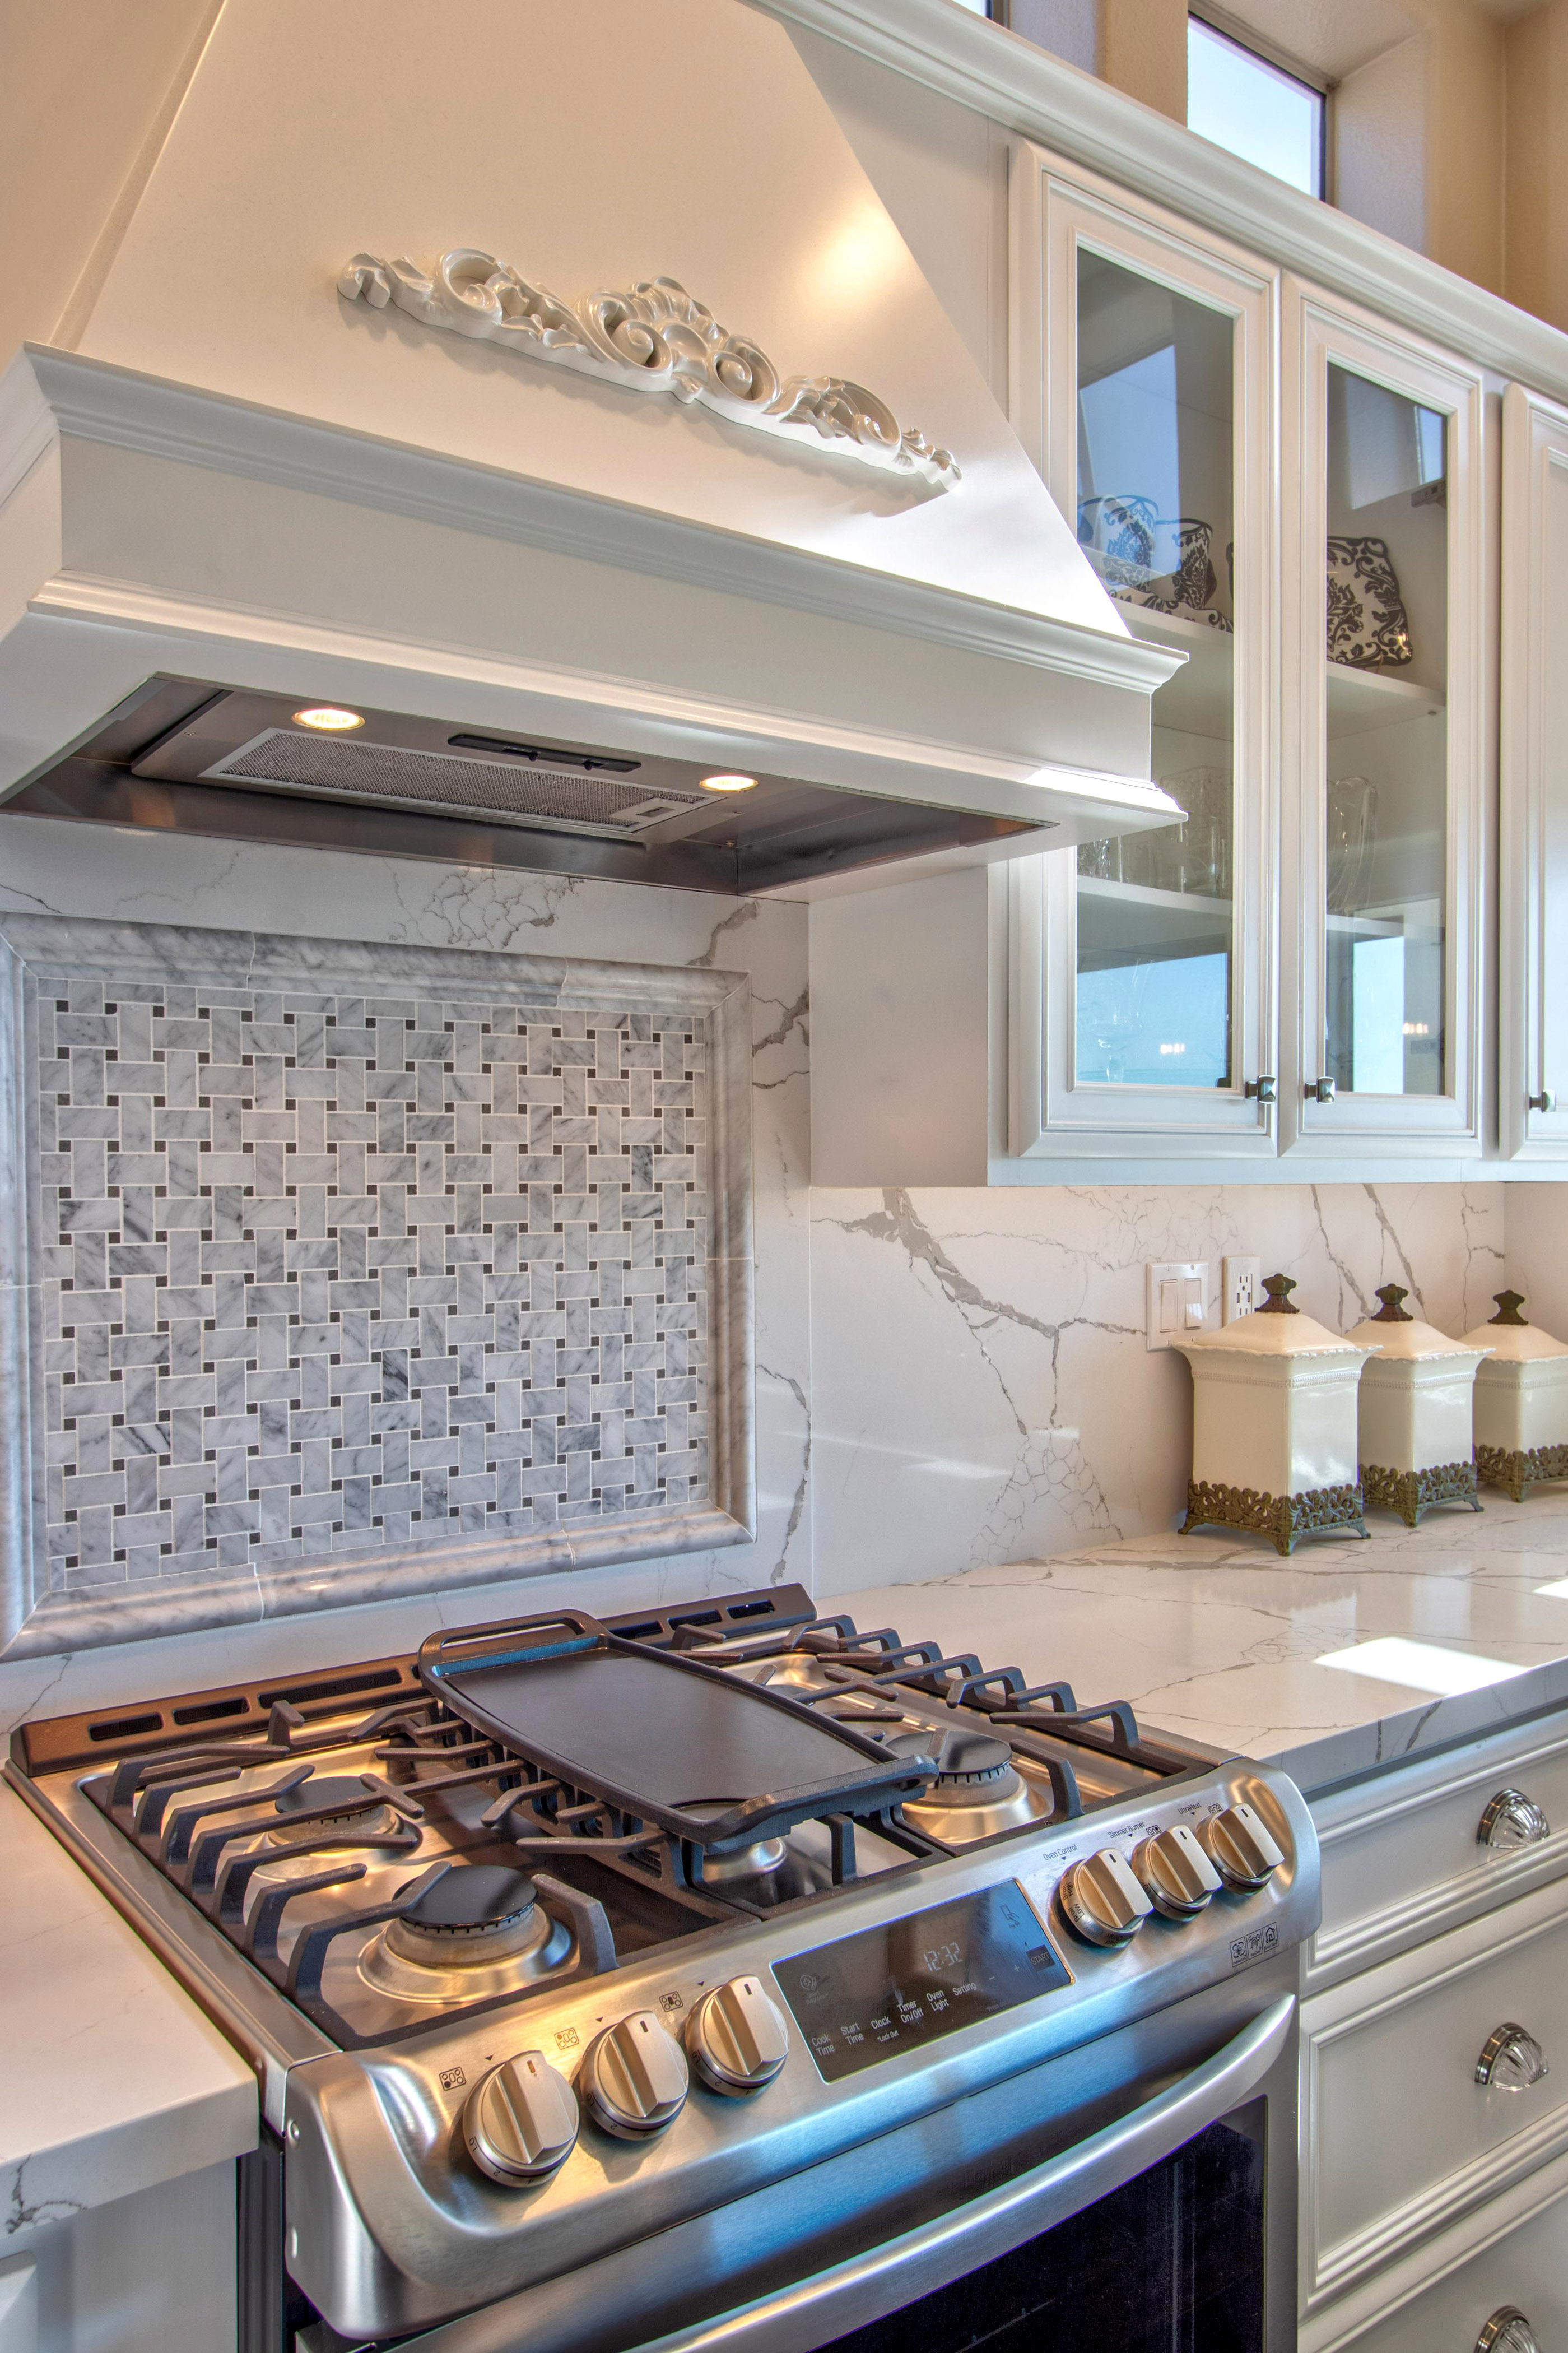 Carlsbad-Cabinet-Refacing-Project-17